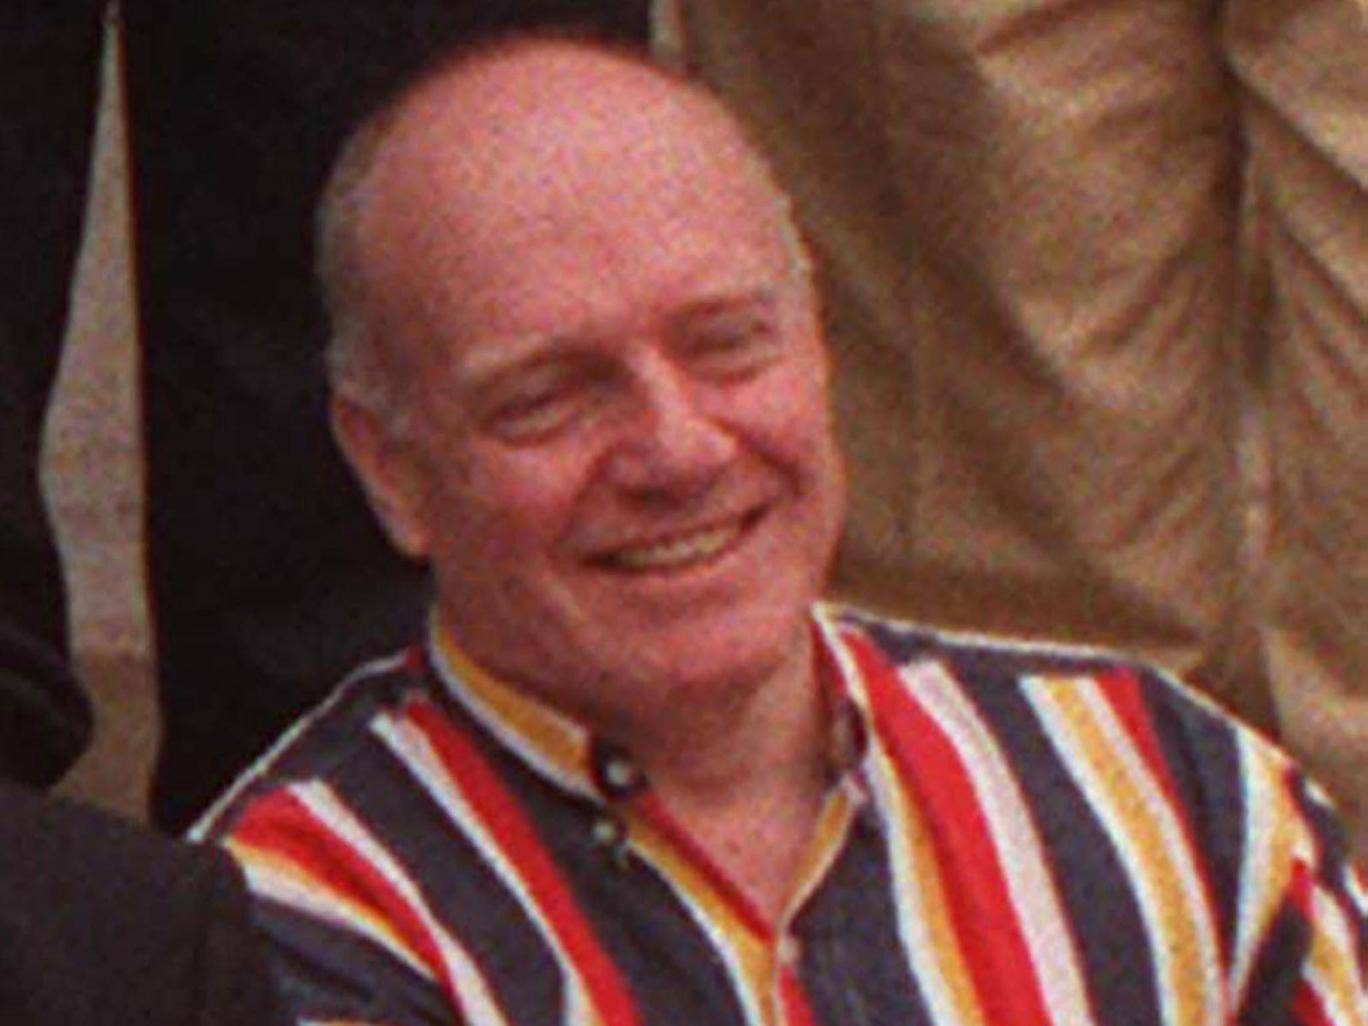 Chris Denning at a gathering of ex-Radio 1 DJs in 1997